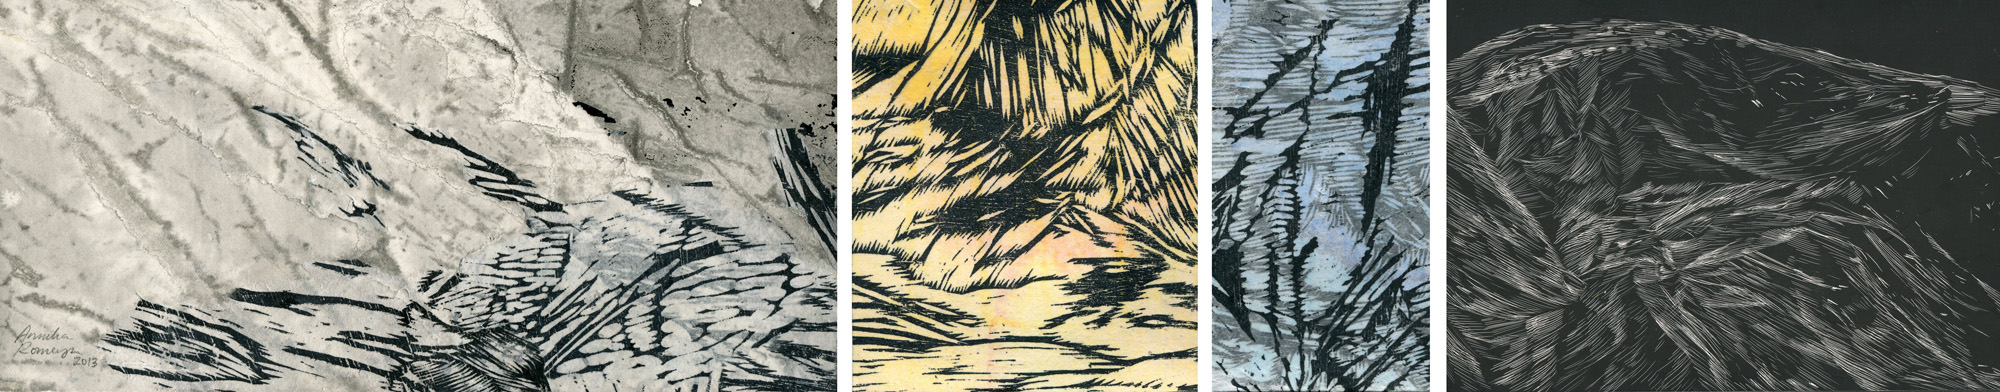 Moments, ink, woodcut and scratchboard, 12 x 65 cm, 2013